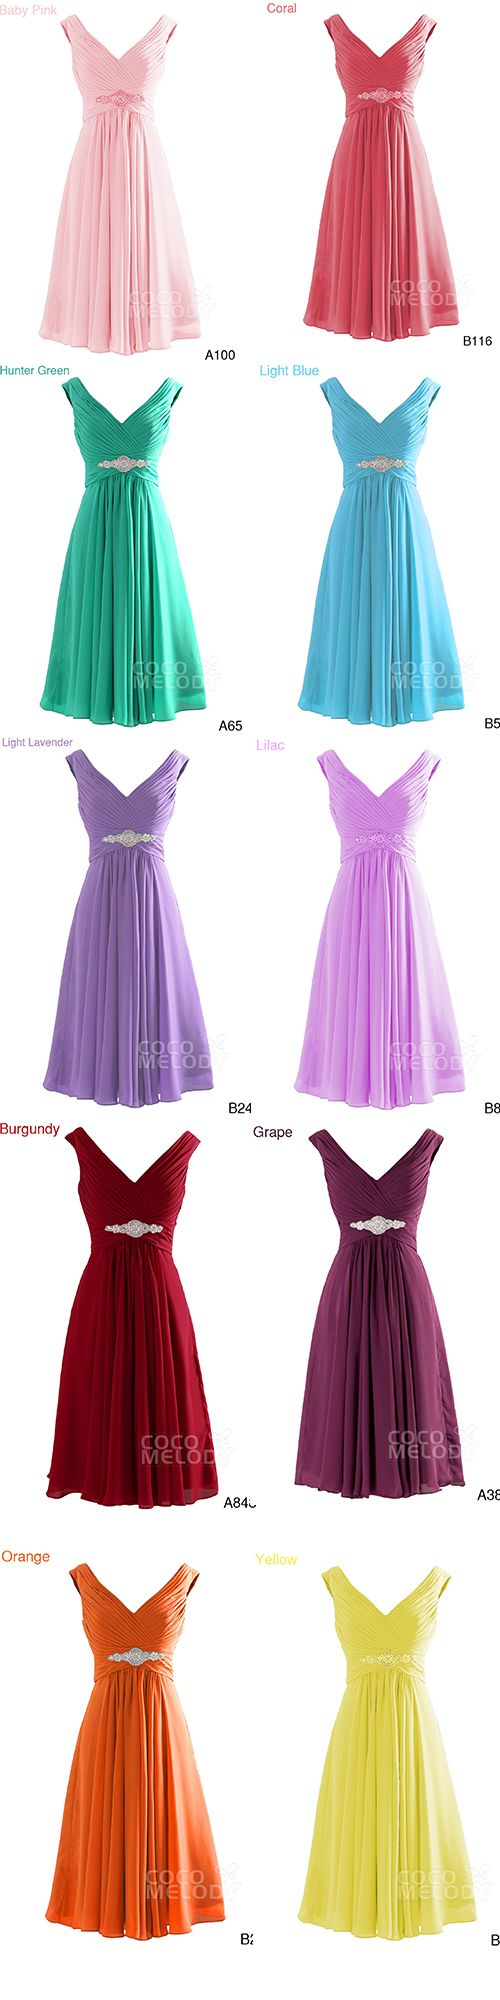 $71. Chiffon knee length #bridesmaid #dresses, 20+ colors available. #cocomelody